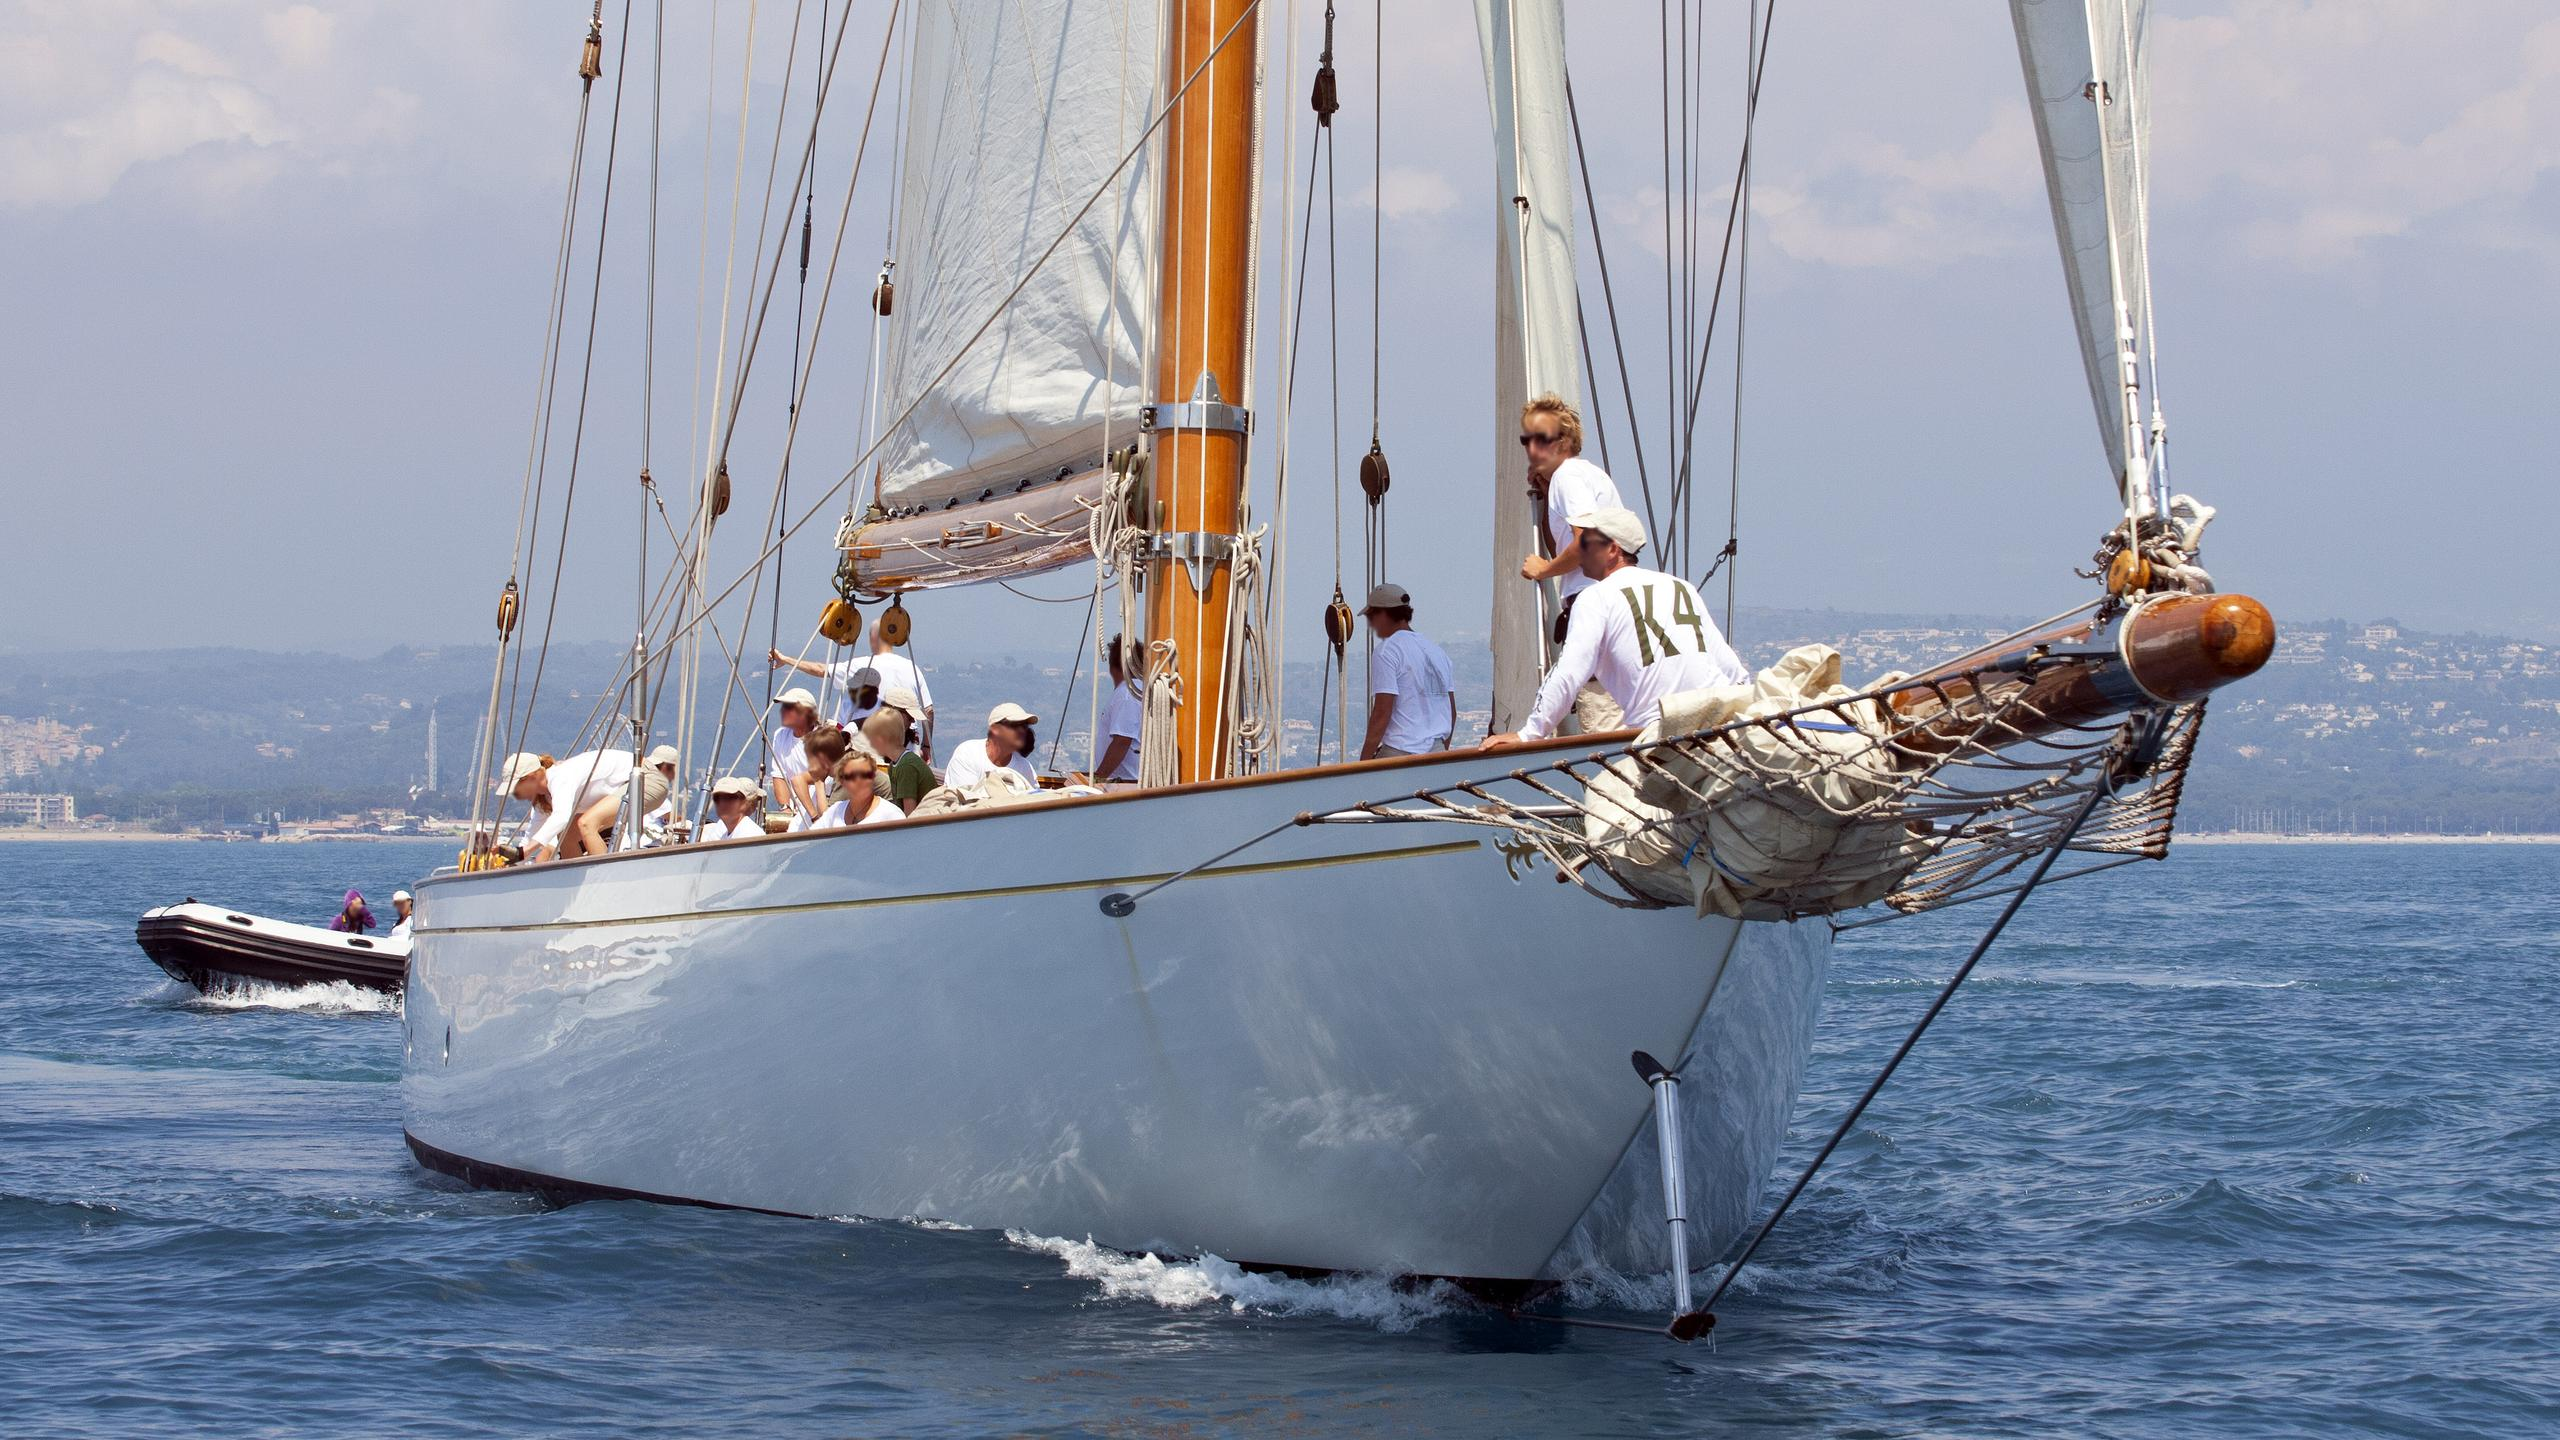 cambria-sailing-yacht-fife-1928-running-bow